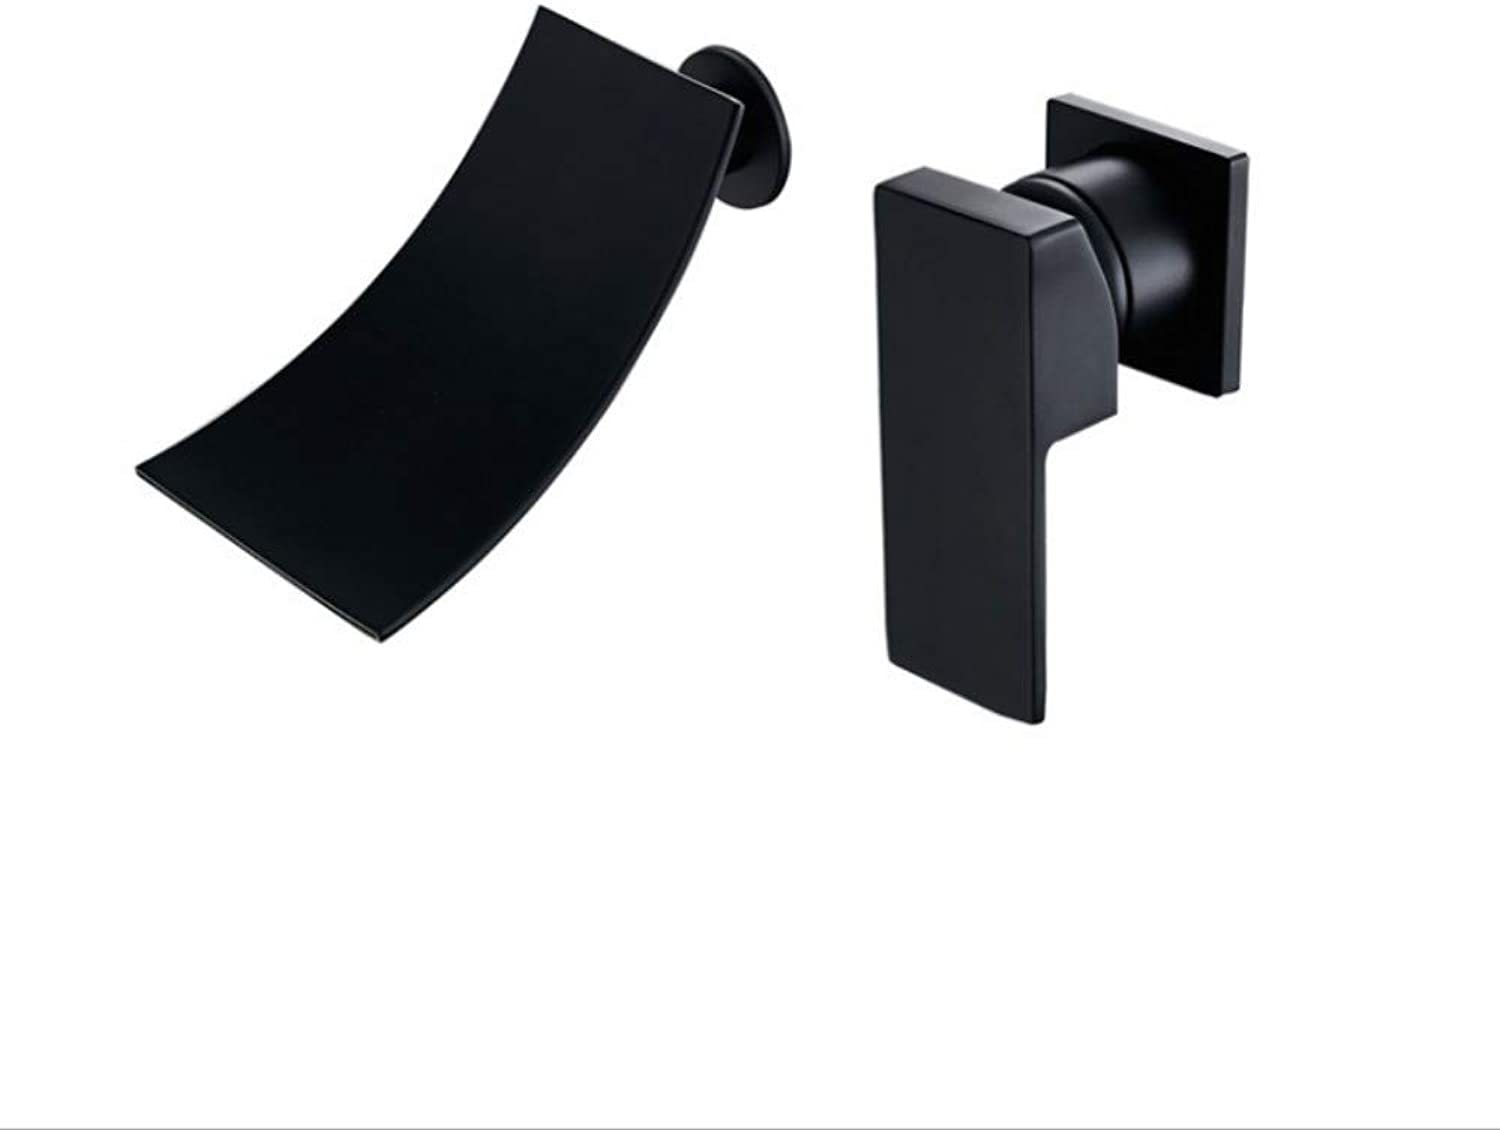 Bathroom Sink Basin Lever Mixer Tap Black Full Copper Wall-Mounted Concealed Surface Basin, Platform Basin, Double-Hole Faucet, Wall-Waterfall Faucet